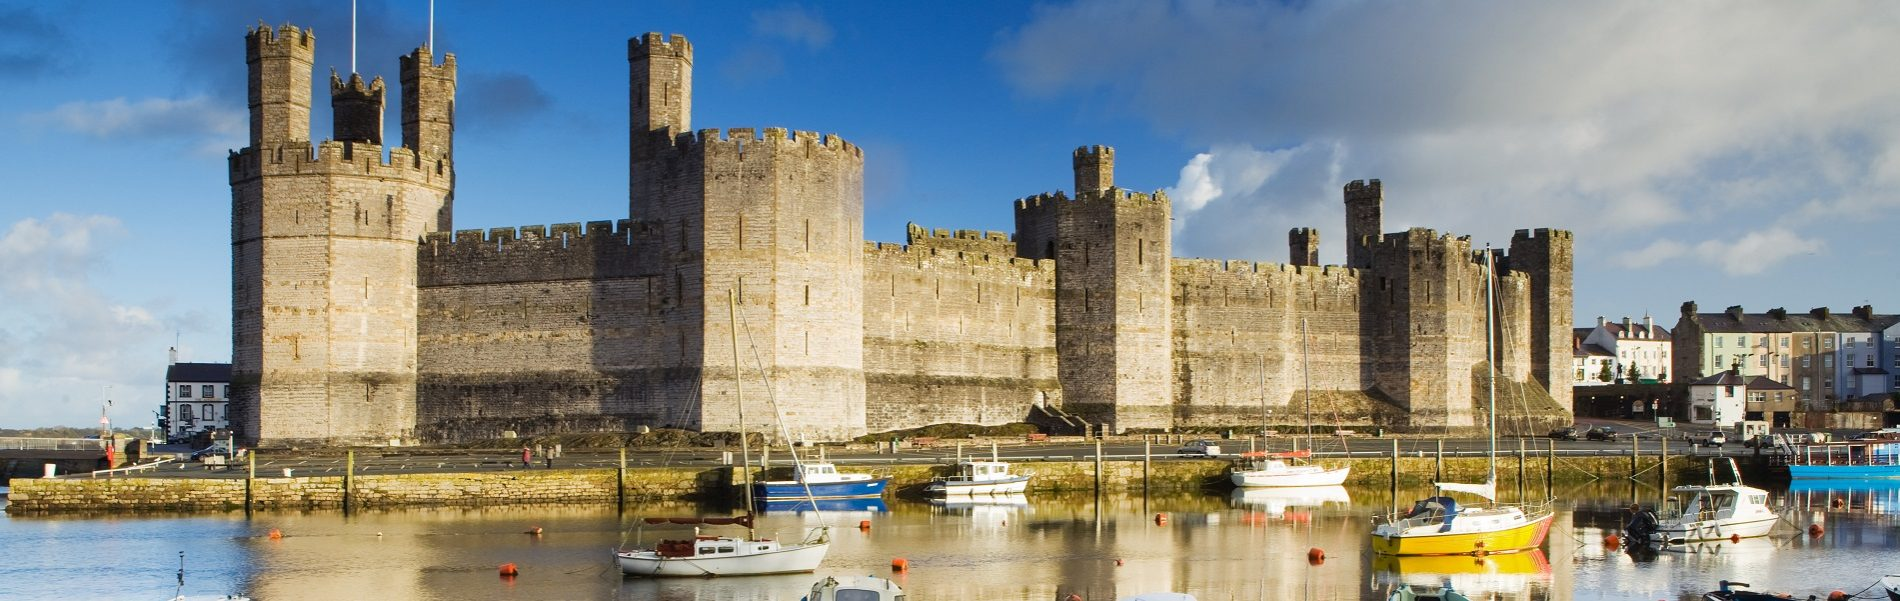 Tours of North Wales - Caernarfon Castle